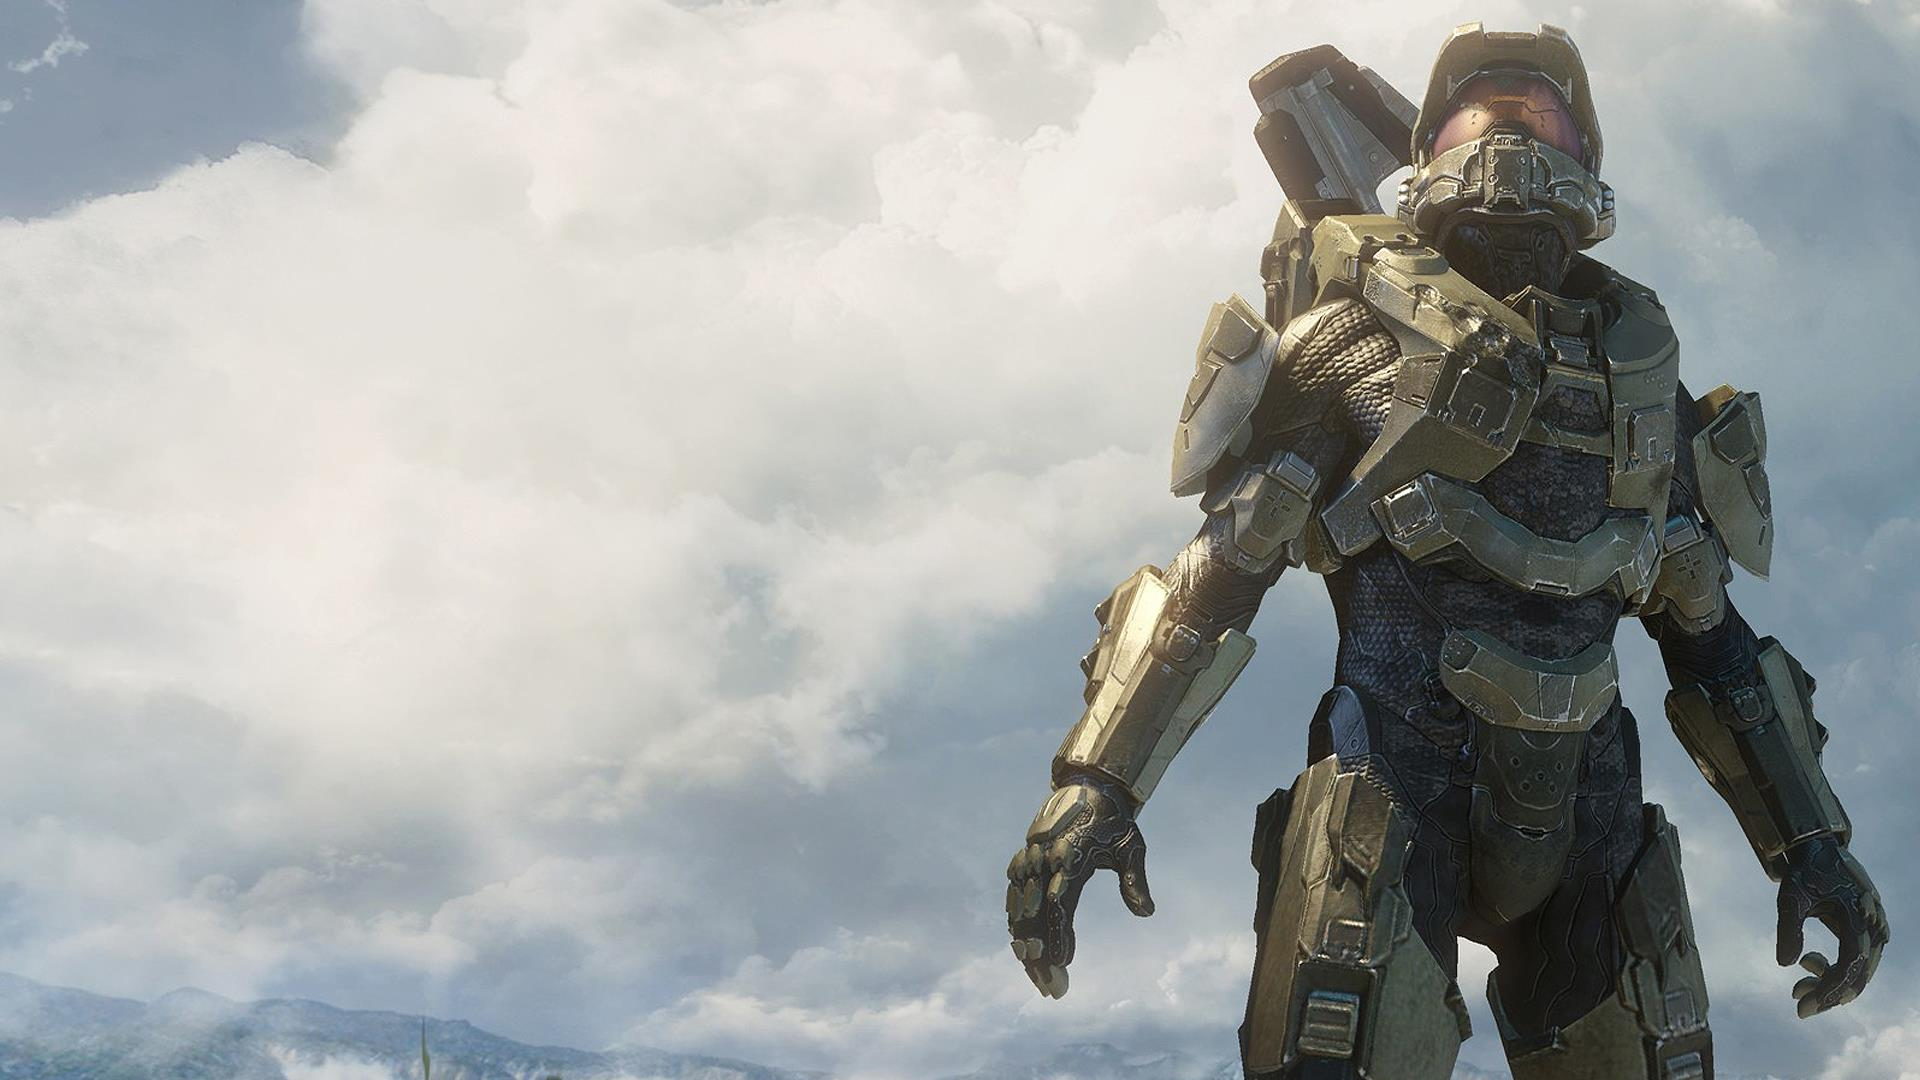 Halo 4 wallpapers pictures images - Halo 4 pictures ...